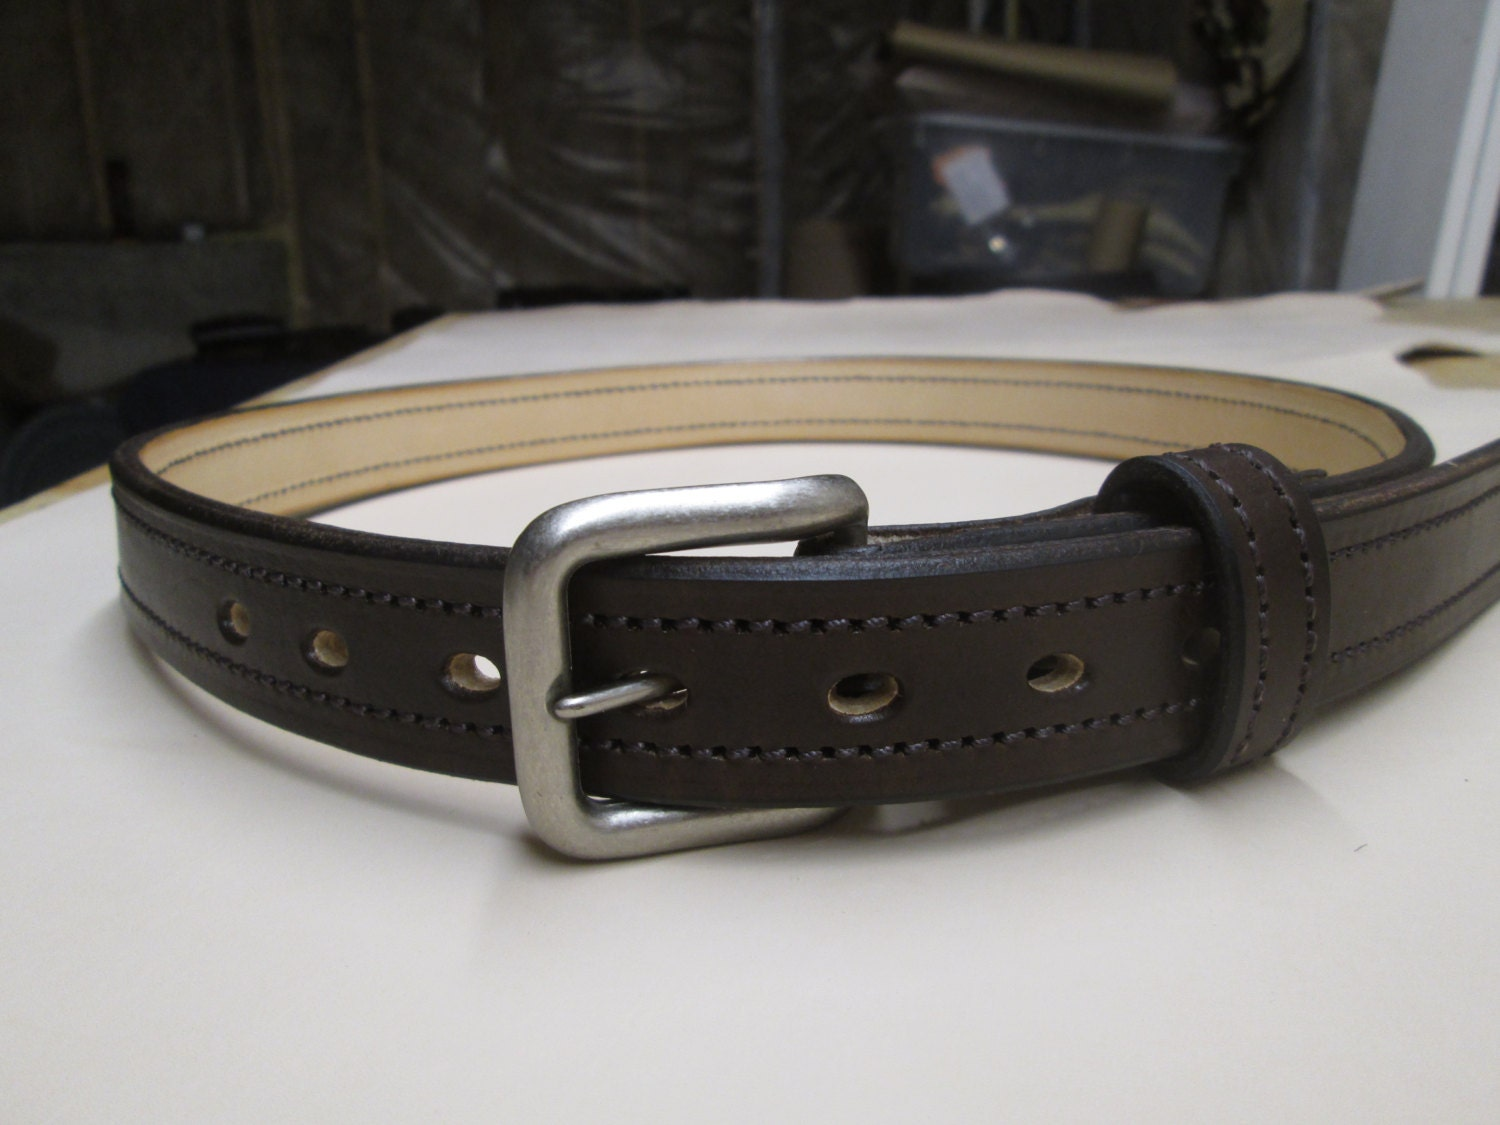 1 1 4 handmade leather gun belt handcrafted leather